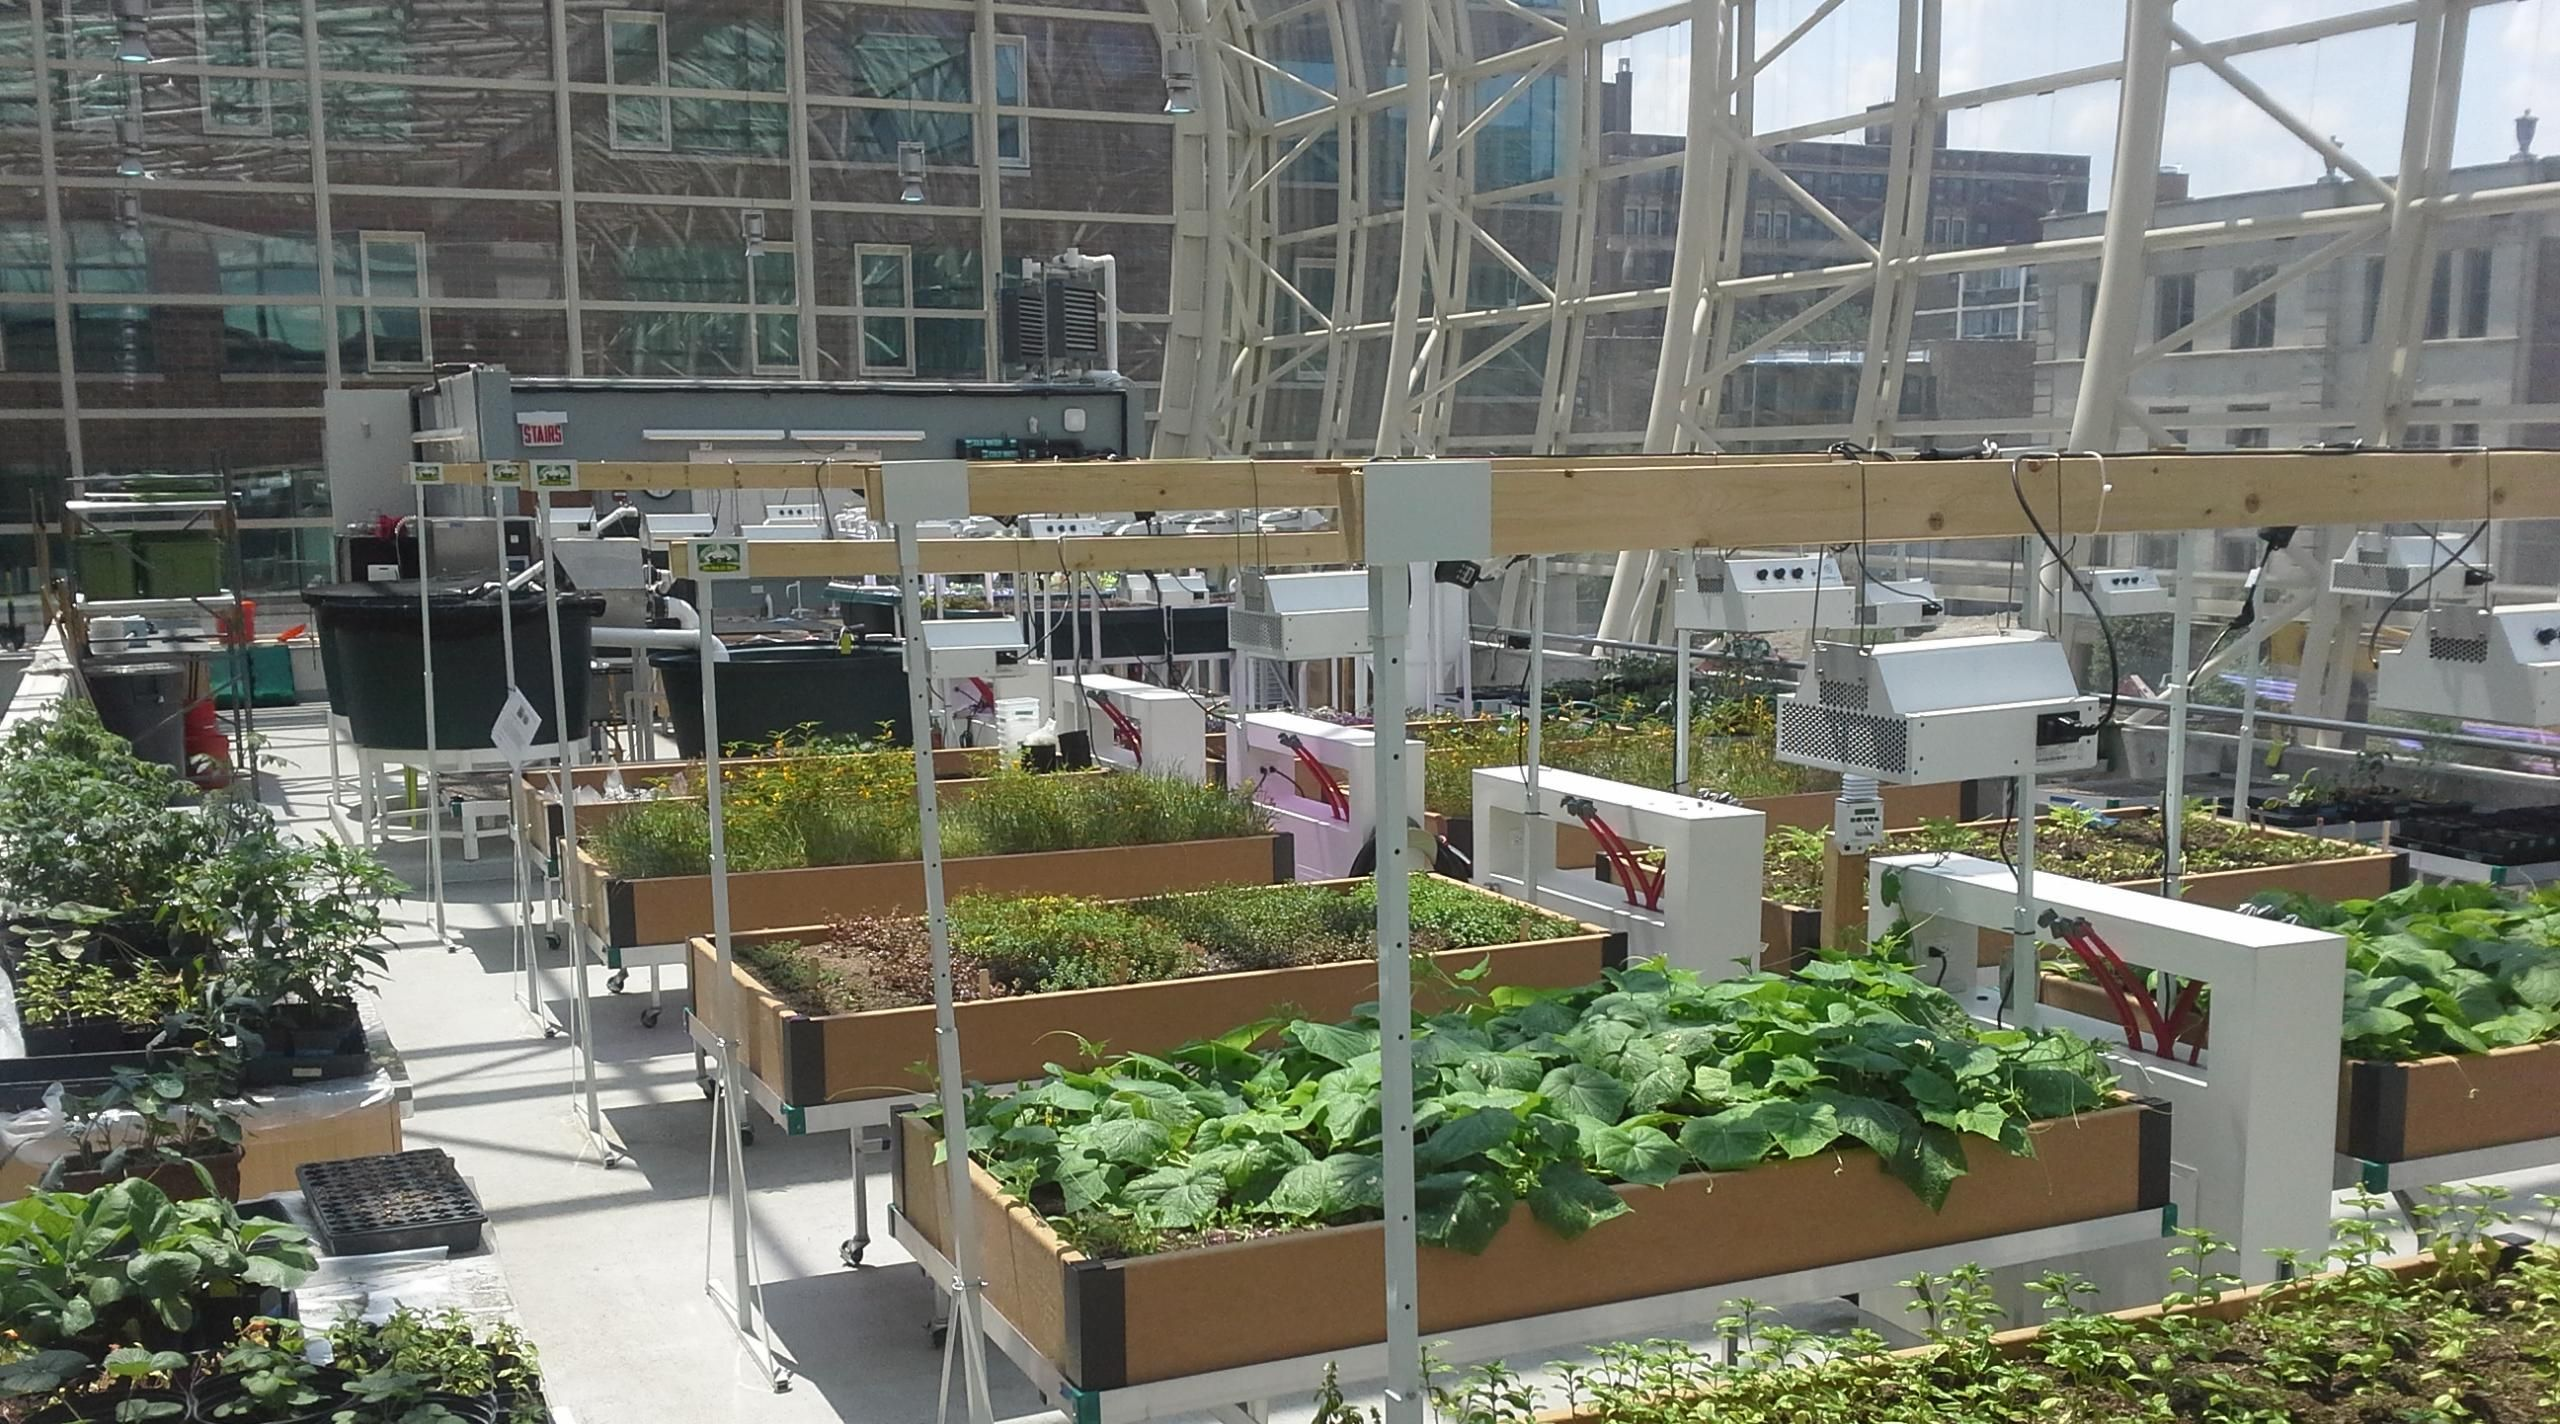 rooftop hydroponic greenhouse - Google Search | Gardening ...